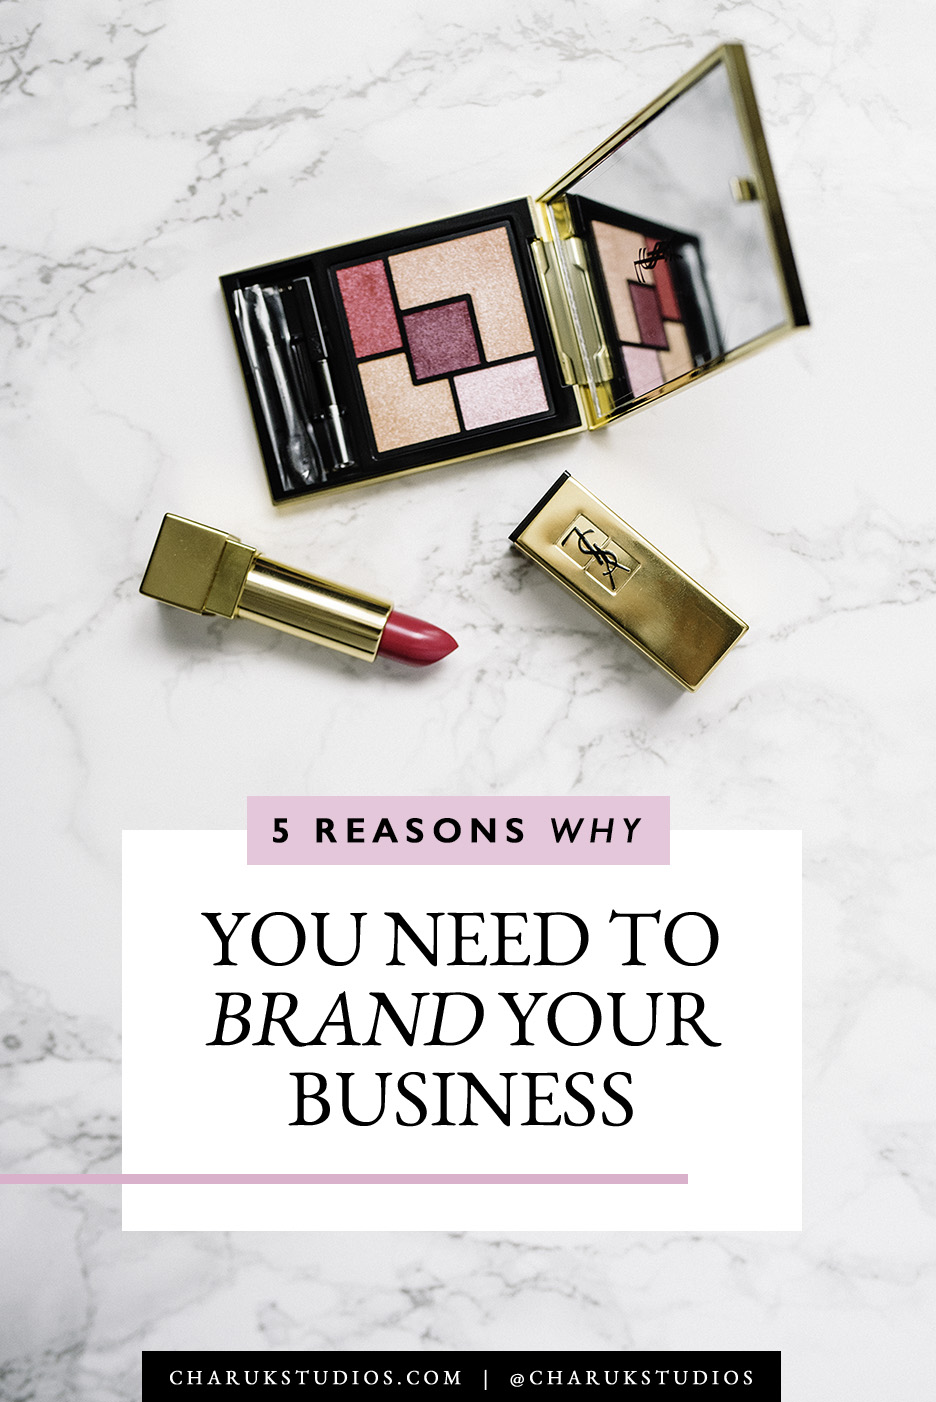 5 Reasons Why You Need to Brand Your Business by Charuk Studios